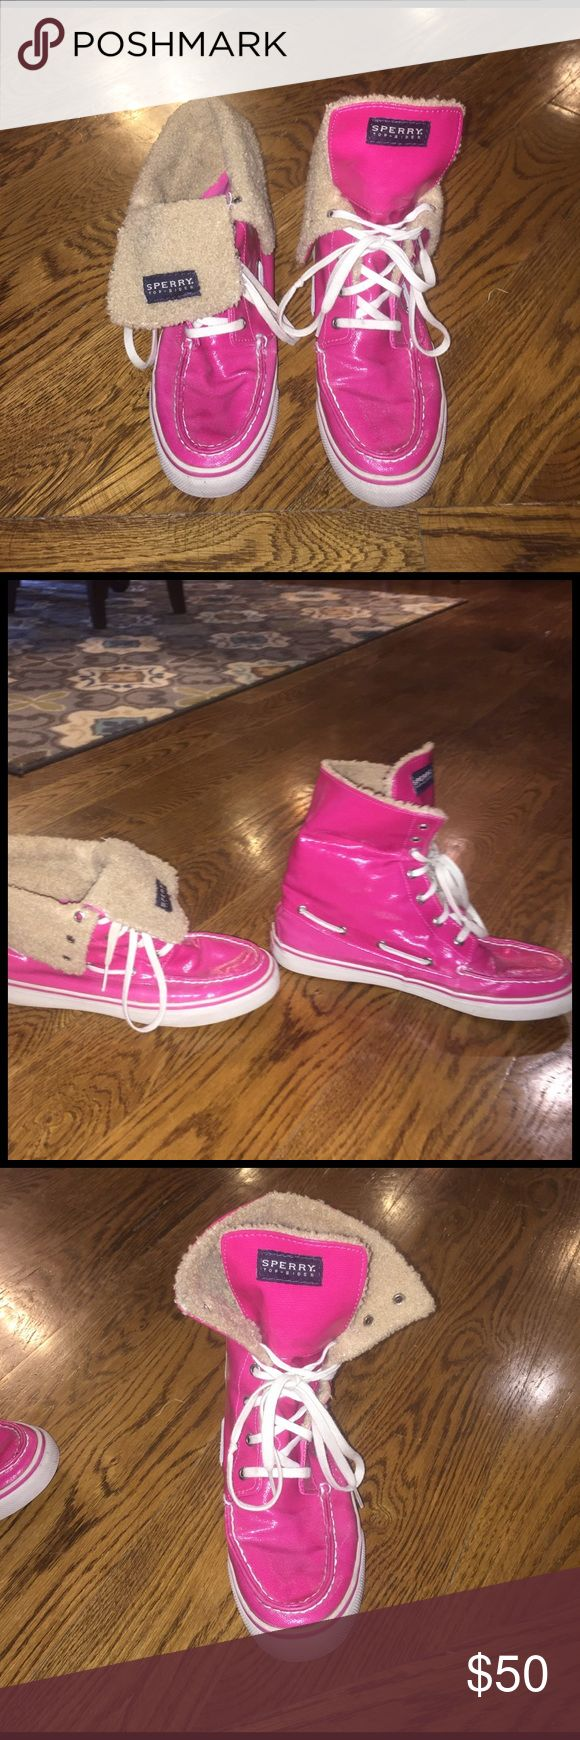 Pink Sperry Top-Sider high tops Pink Sperry high tops with fur covering the inside. Cute both with the pink all showing or bending the sides down to show the fur. Really comfortable. The pink is kind of a leathery feel to it. Sperry Top-Sider Shoes Combat & Moto Boots